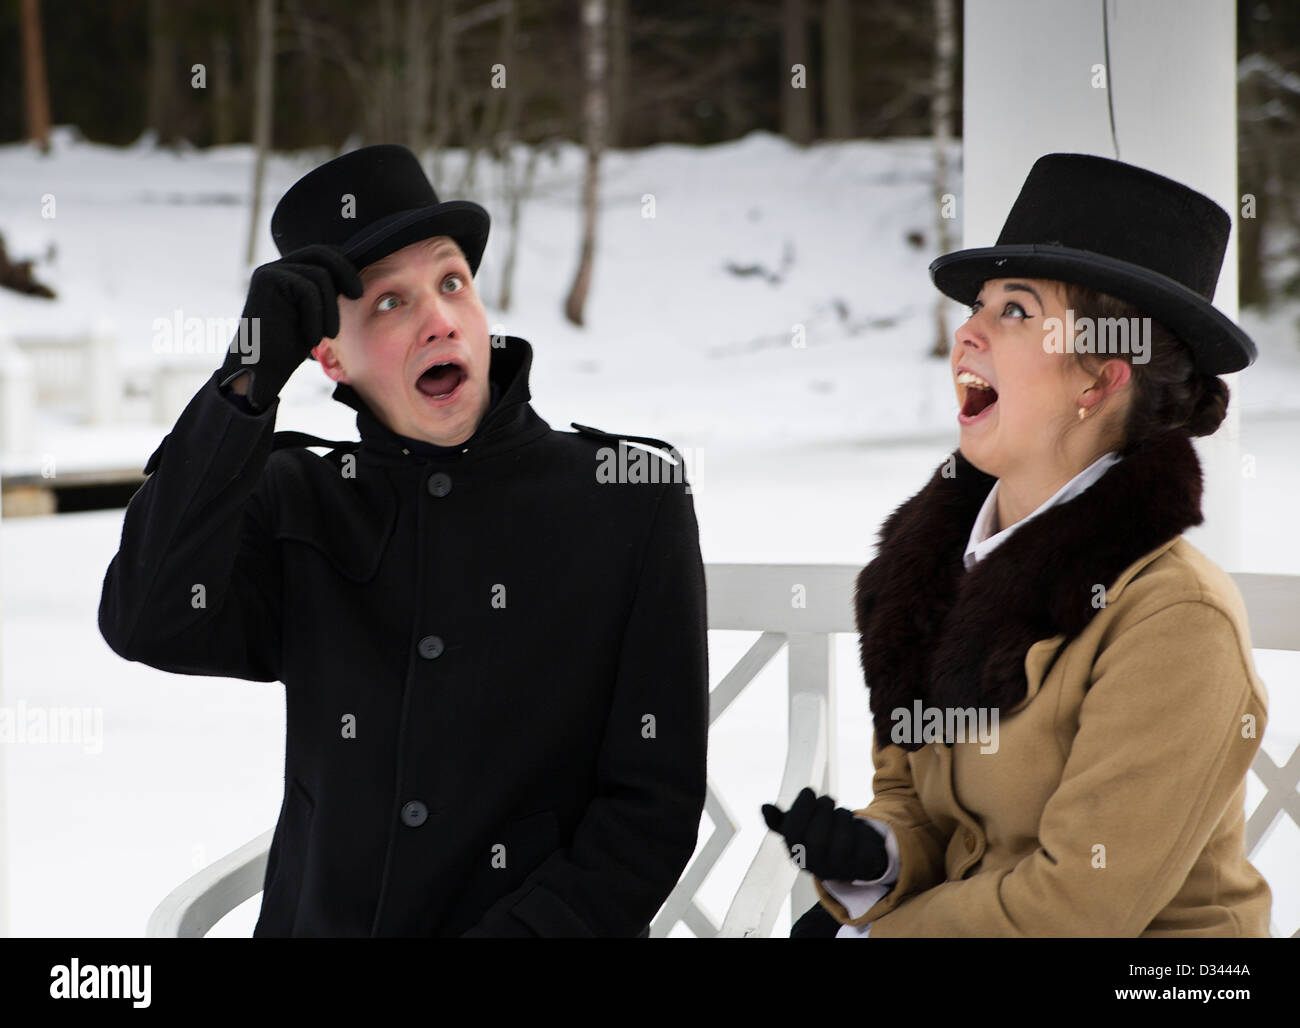 Man and woman surprise when something happened unpredictable - Stock Image